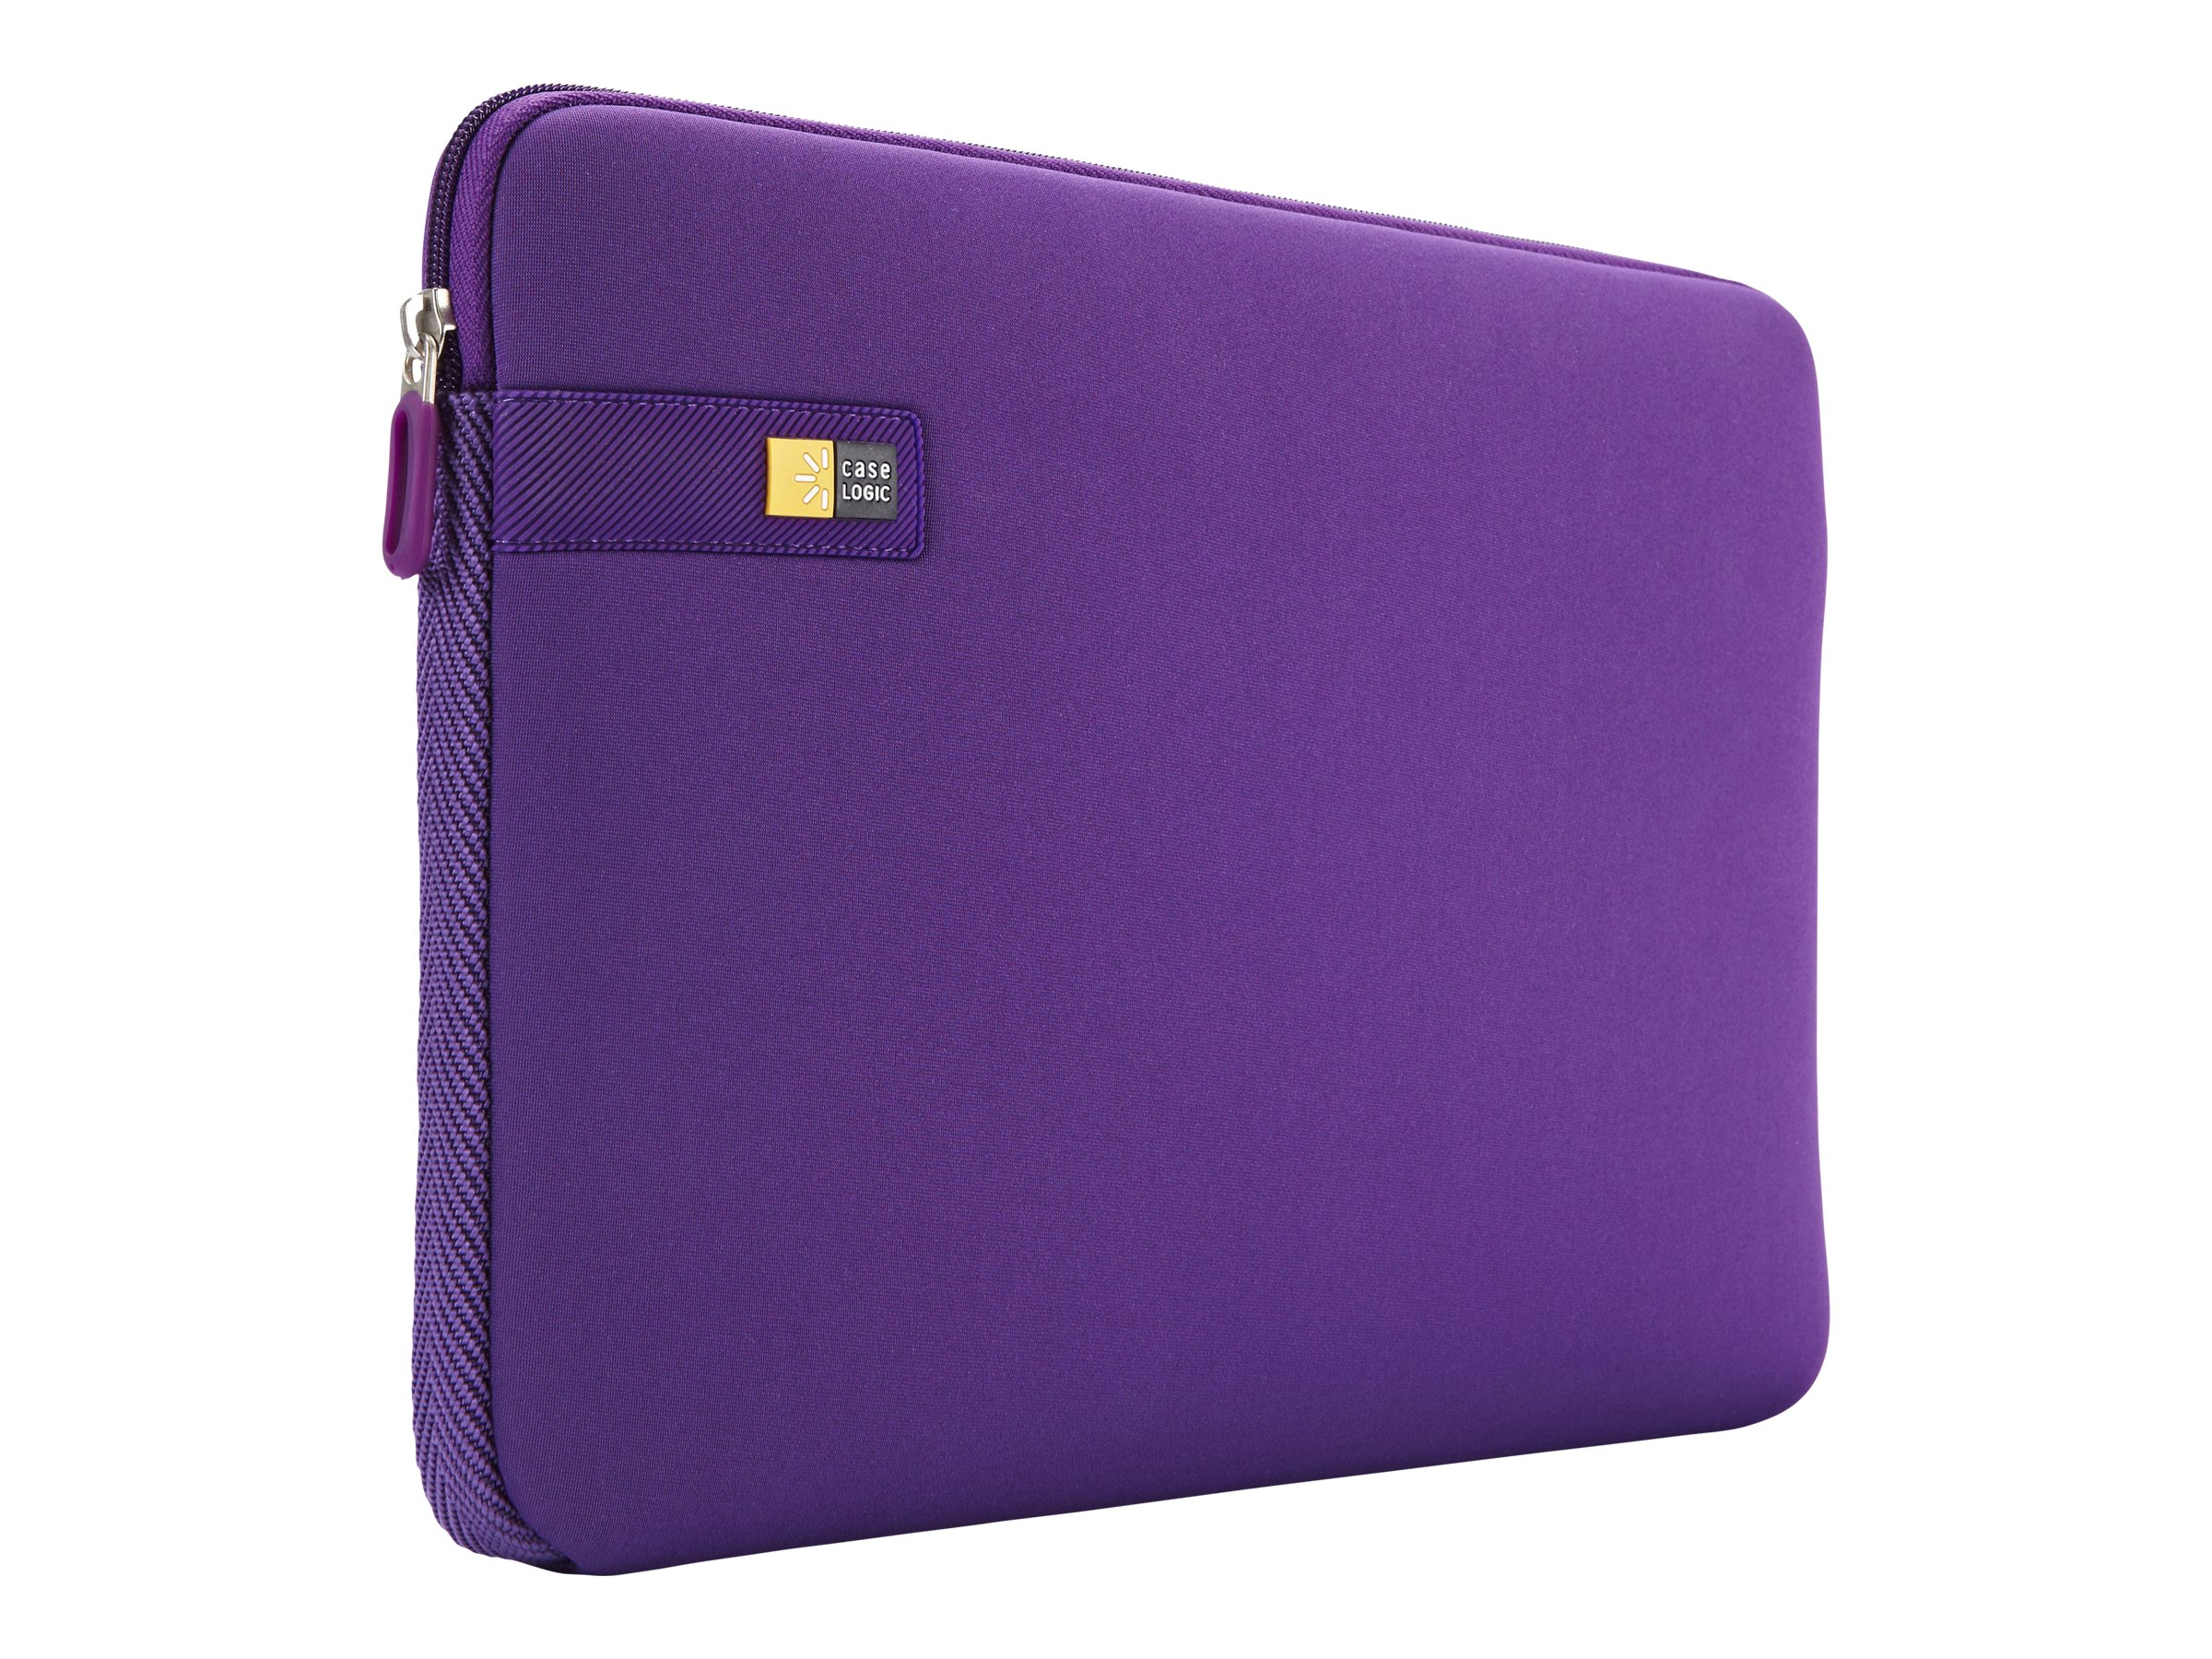 Case Logic 15.6 Laptop iPad Sleeve, Purple, LAPS-116PURPLE